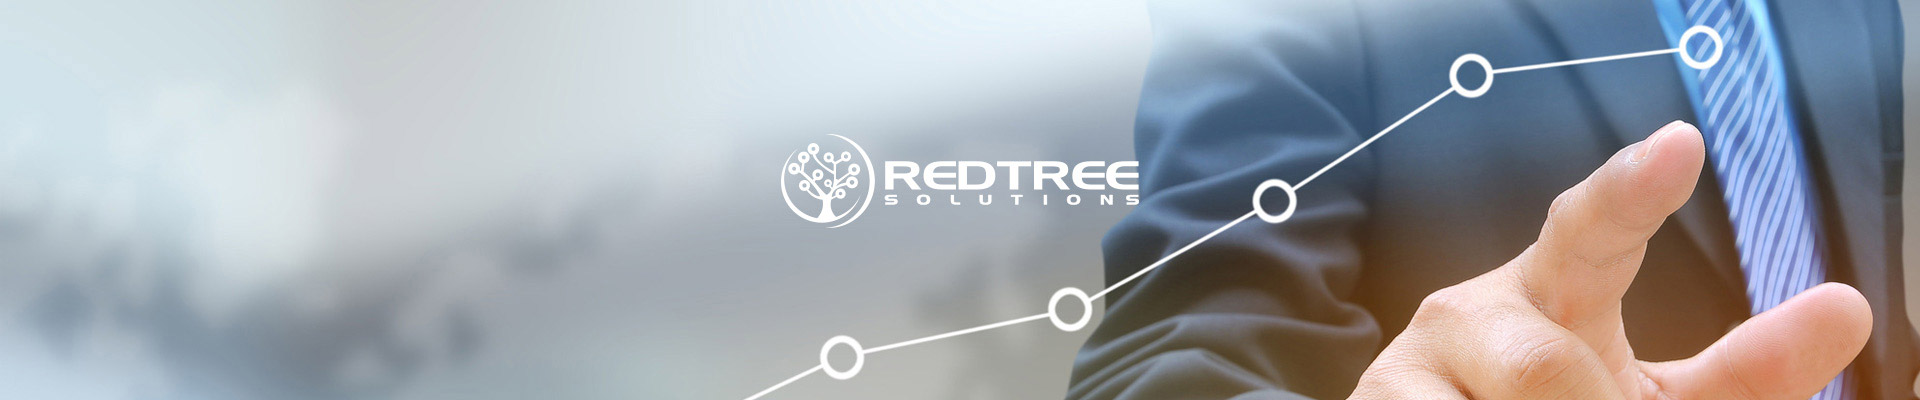 s_redtree_partners